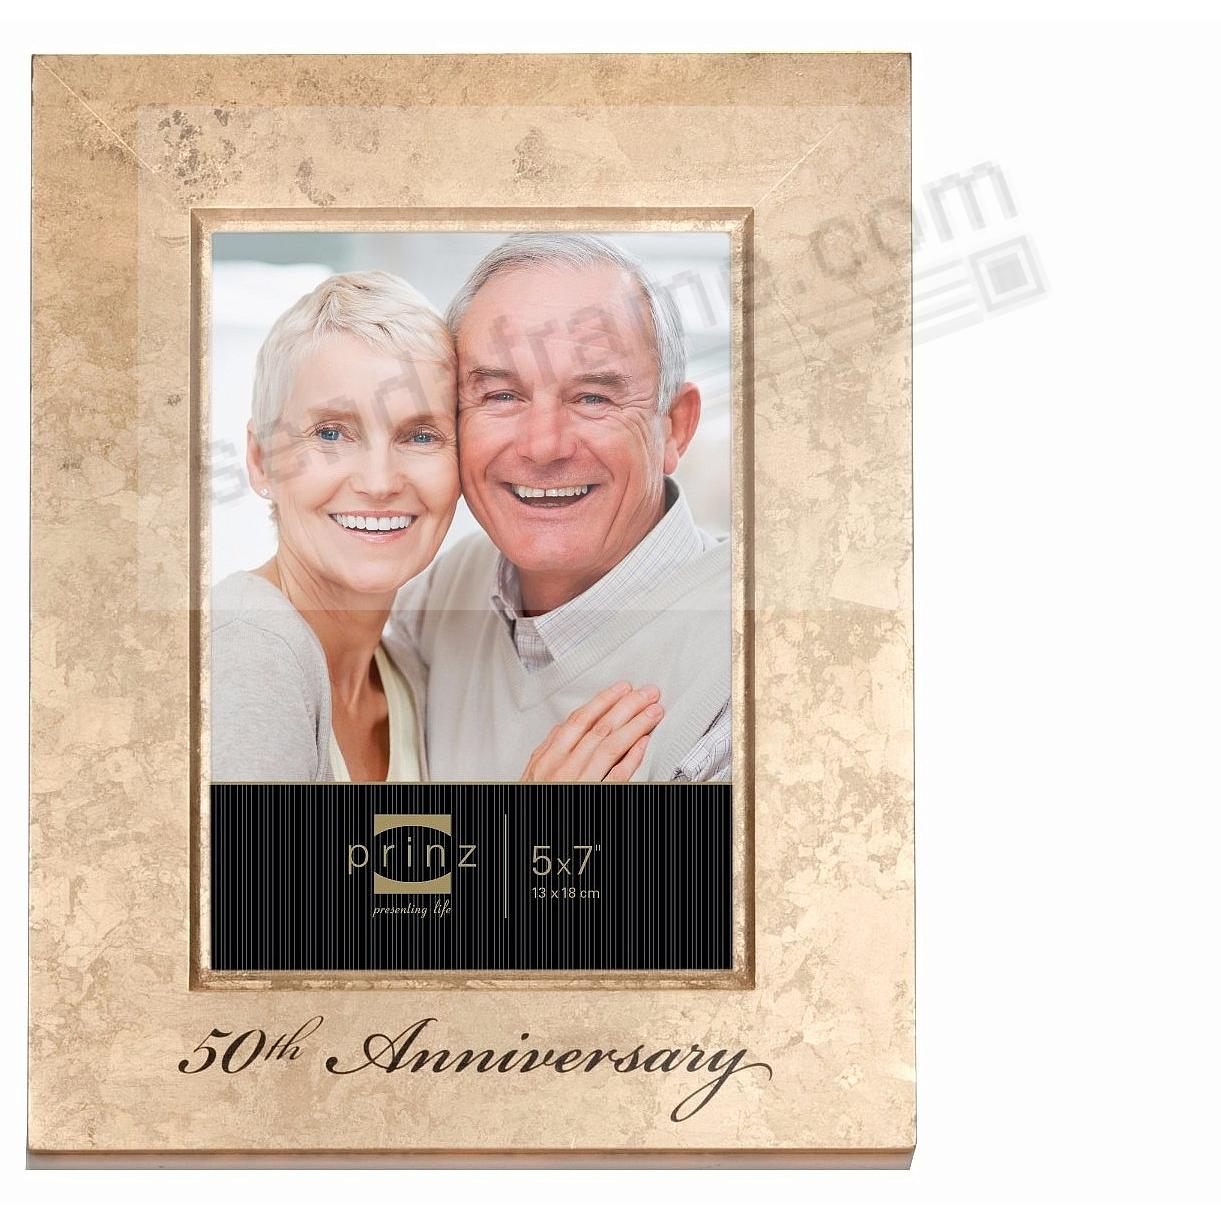 celebrate a 50th anniversary with this special golden wood 5x7 frame by prinz